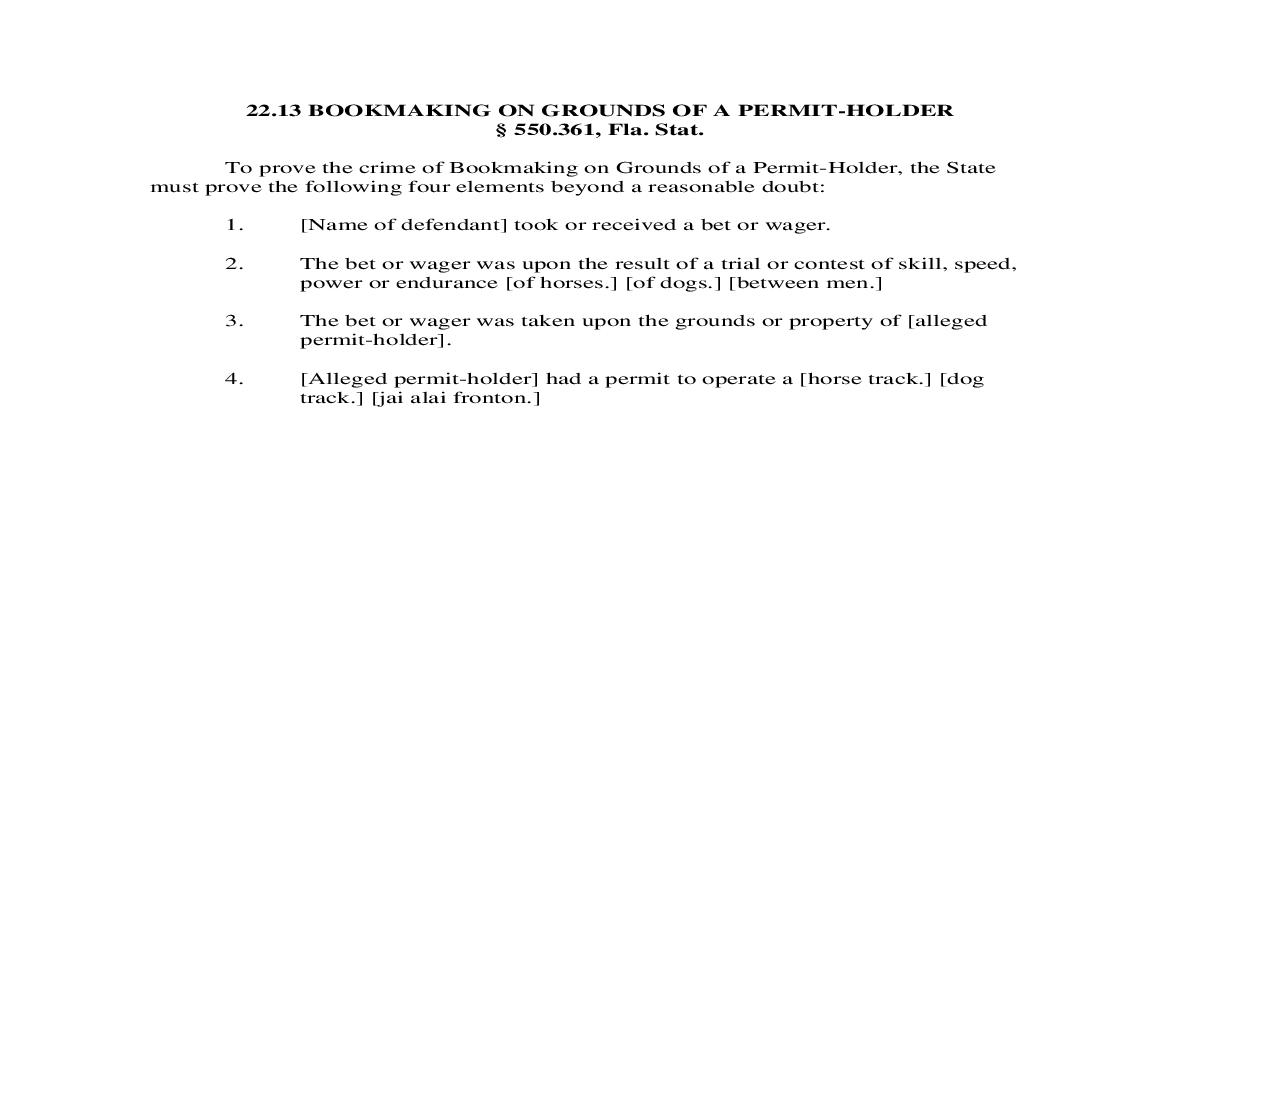 22.13. Bookmaking On Grounds Of A Permit-Holder   Pdf Doc Docx   Florida_JI